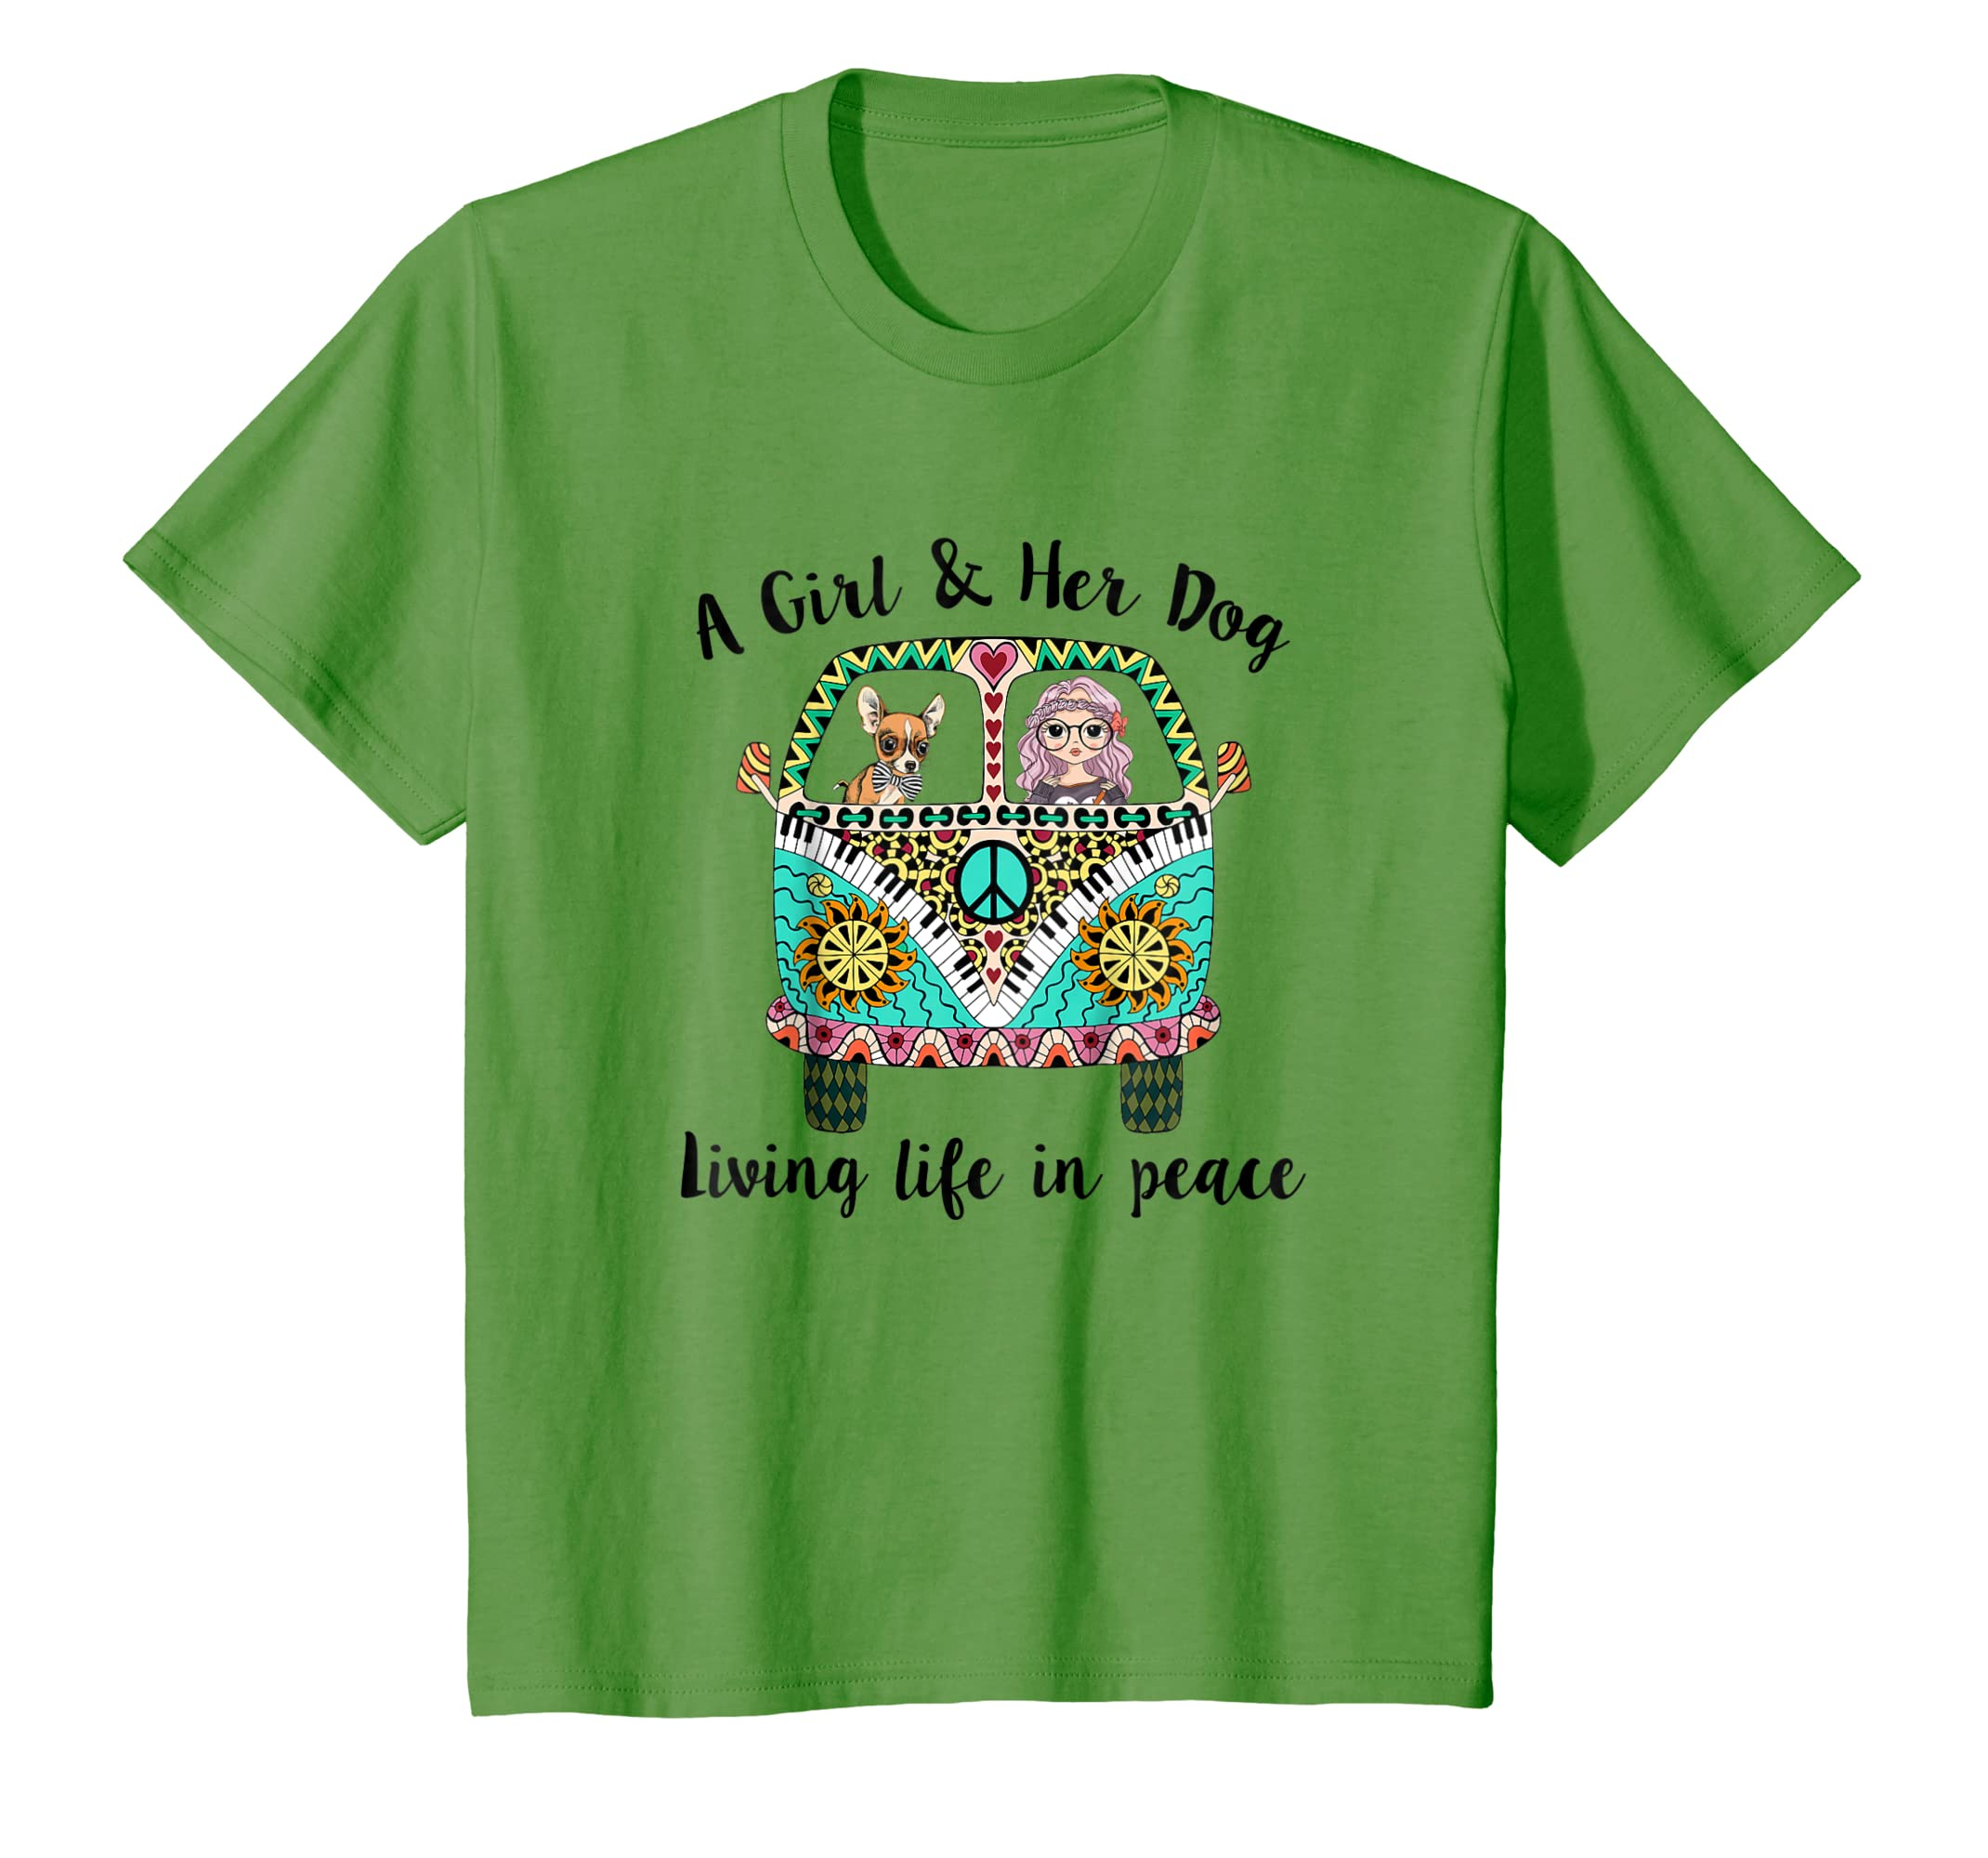 A girl and her dog living life in peace T shirt